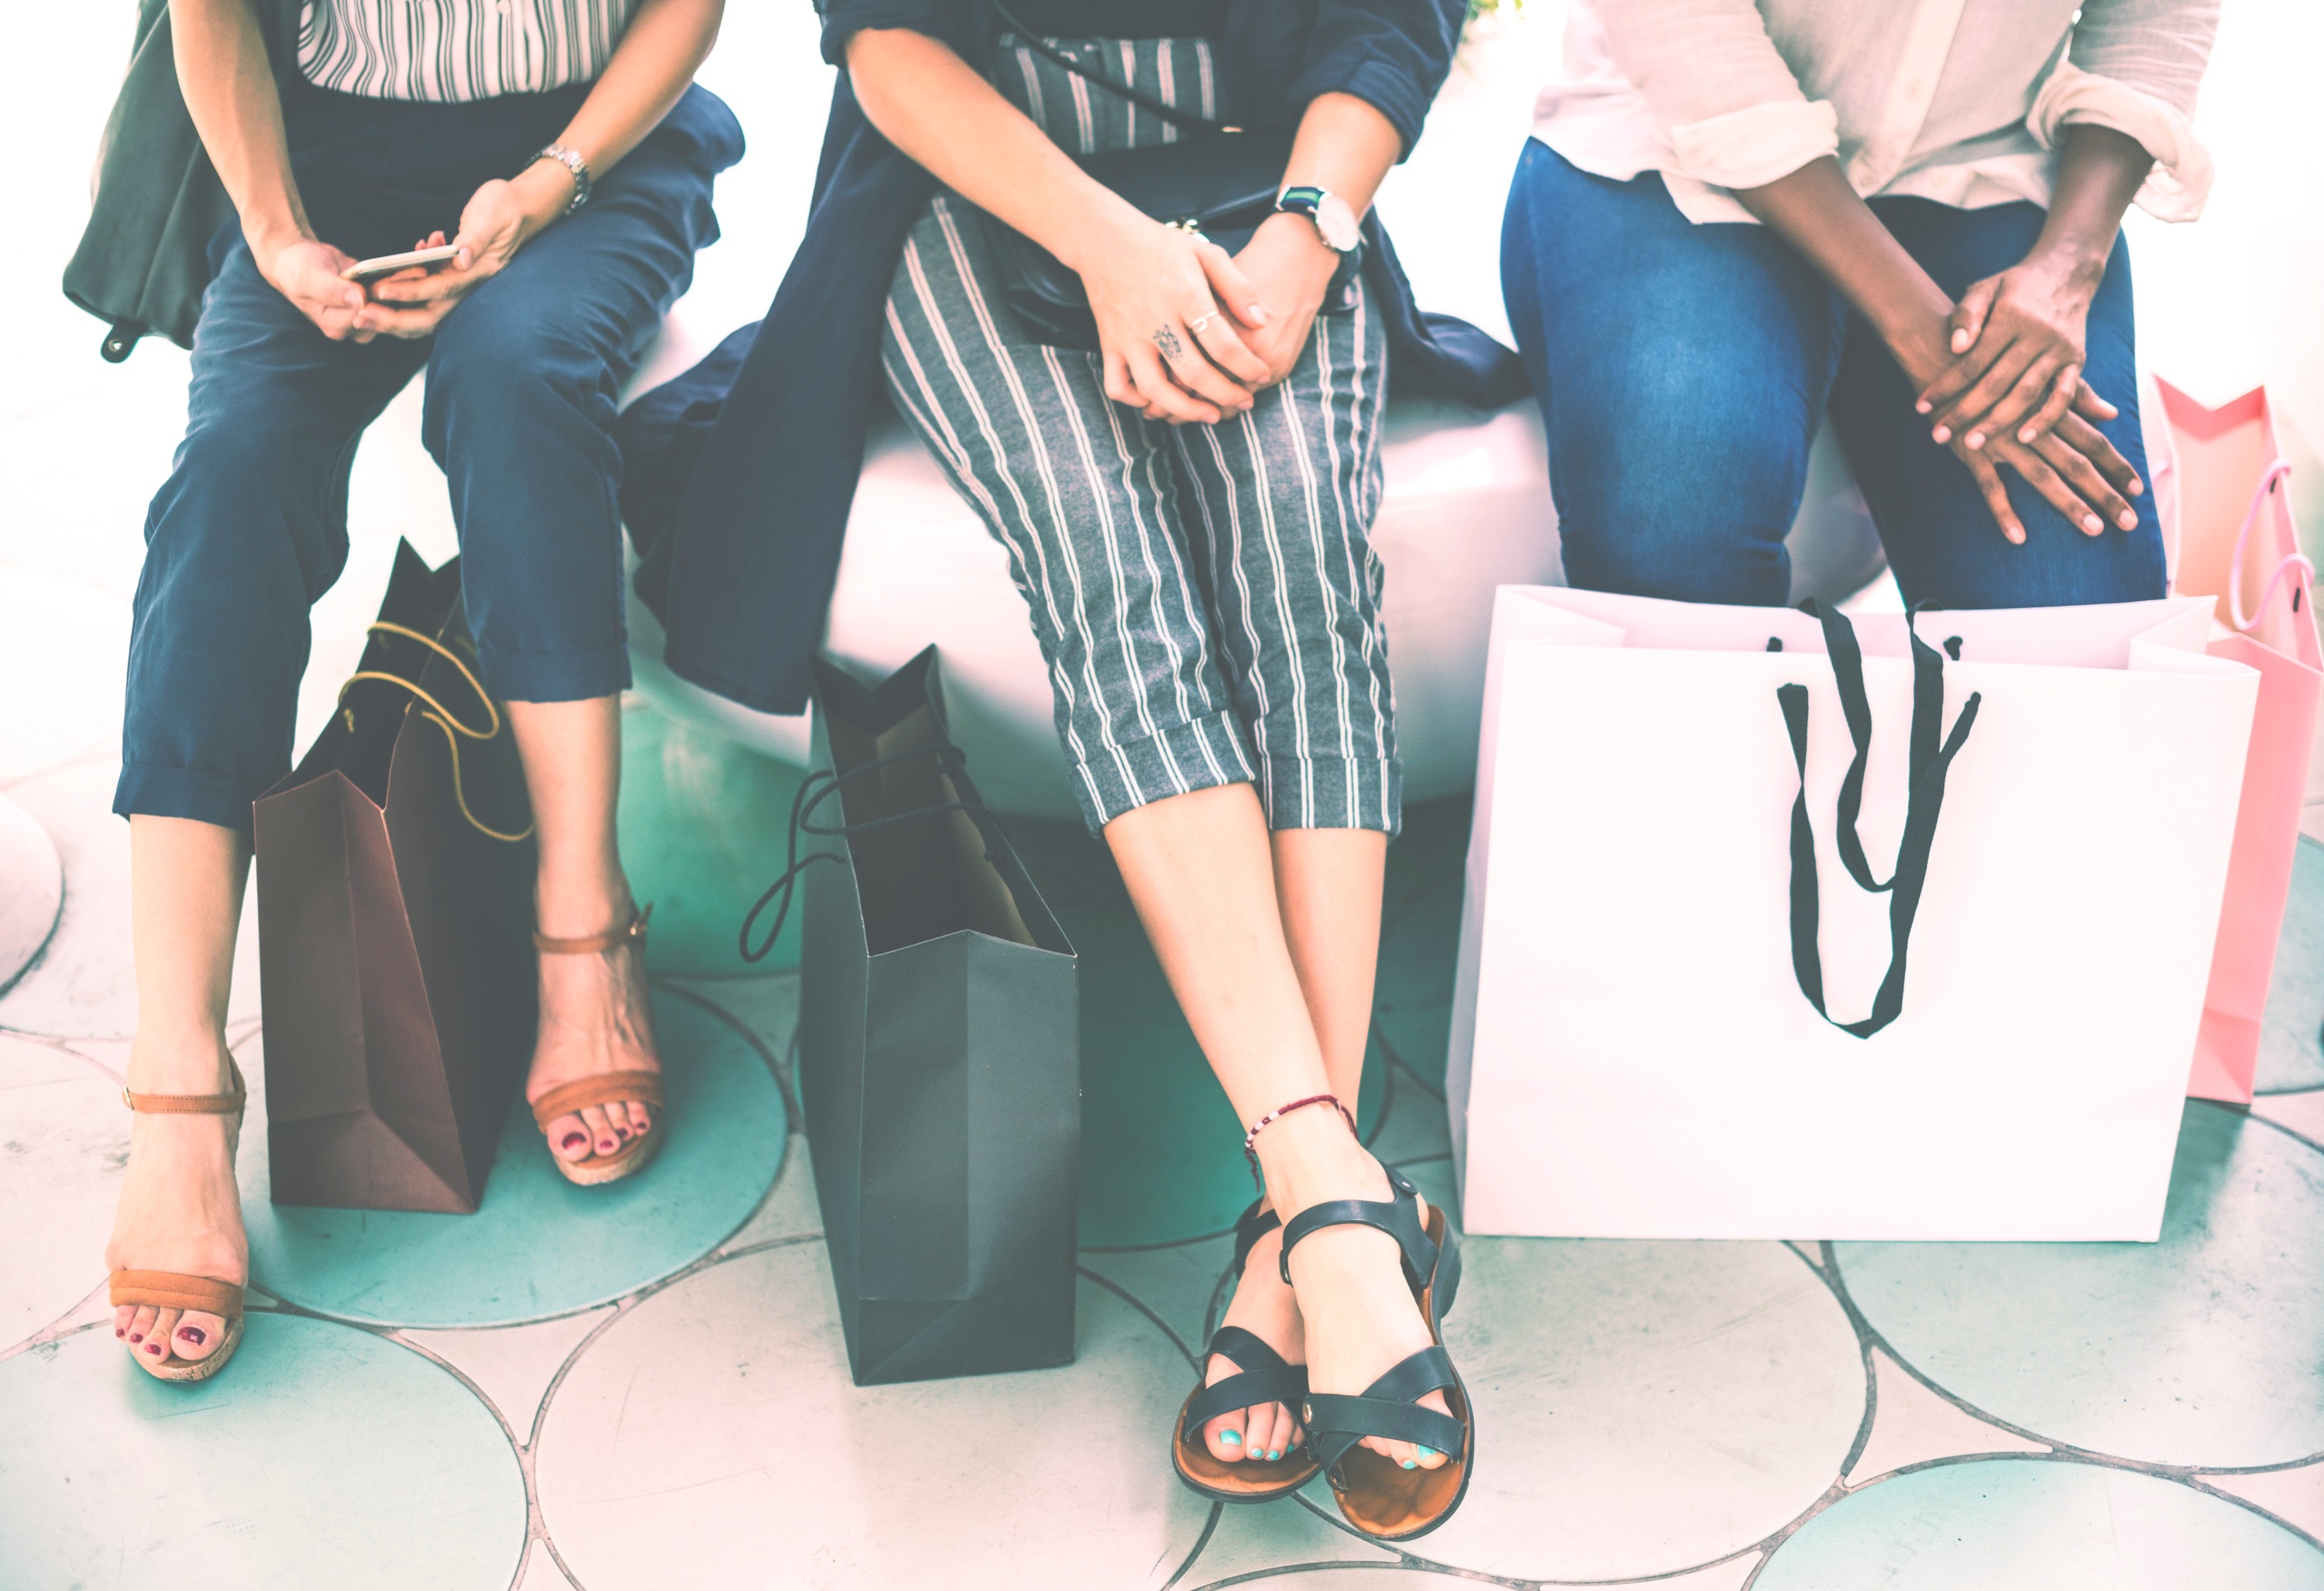 Three woman sit with their hands crossed and shopping bags at their feet